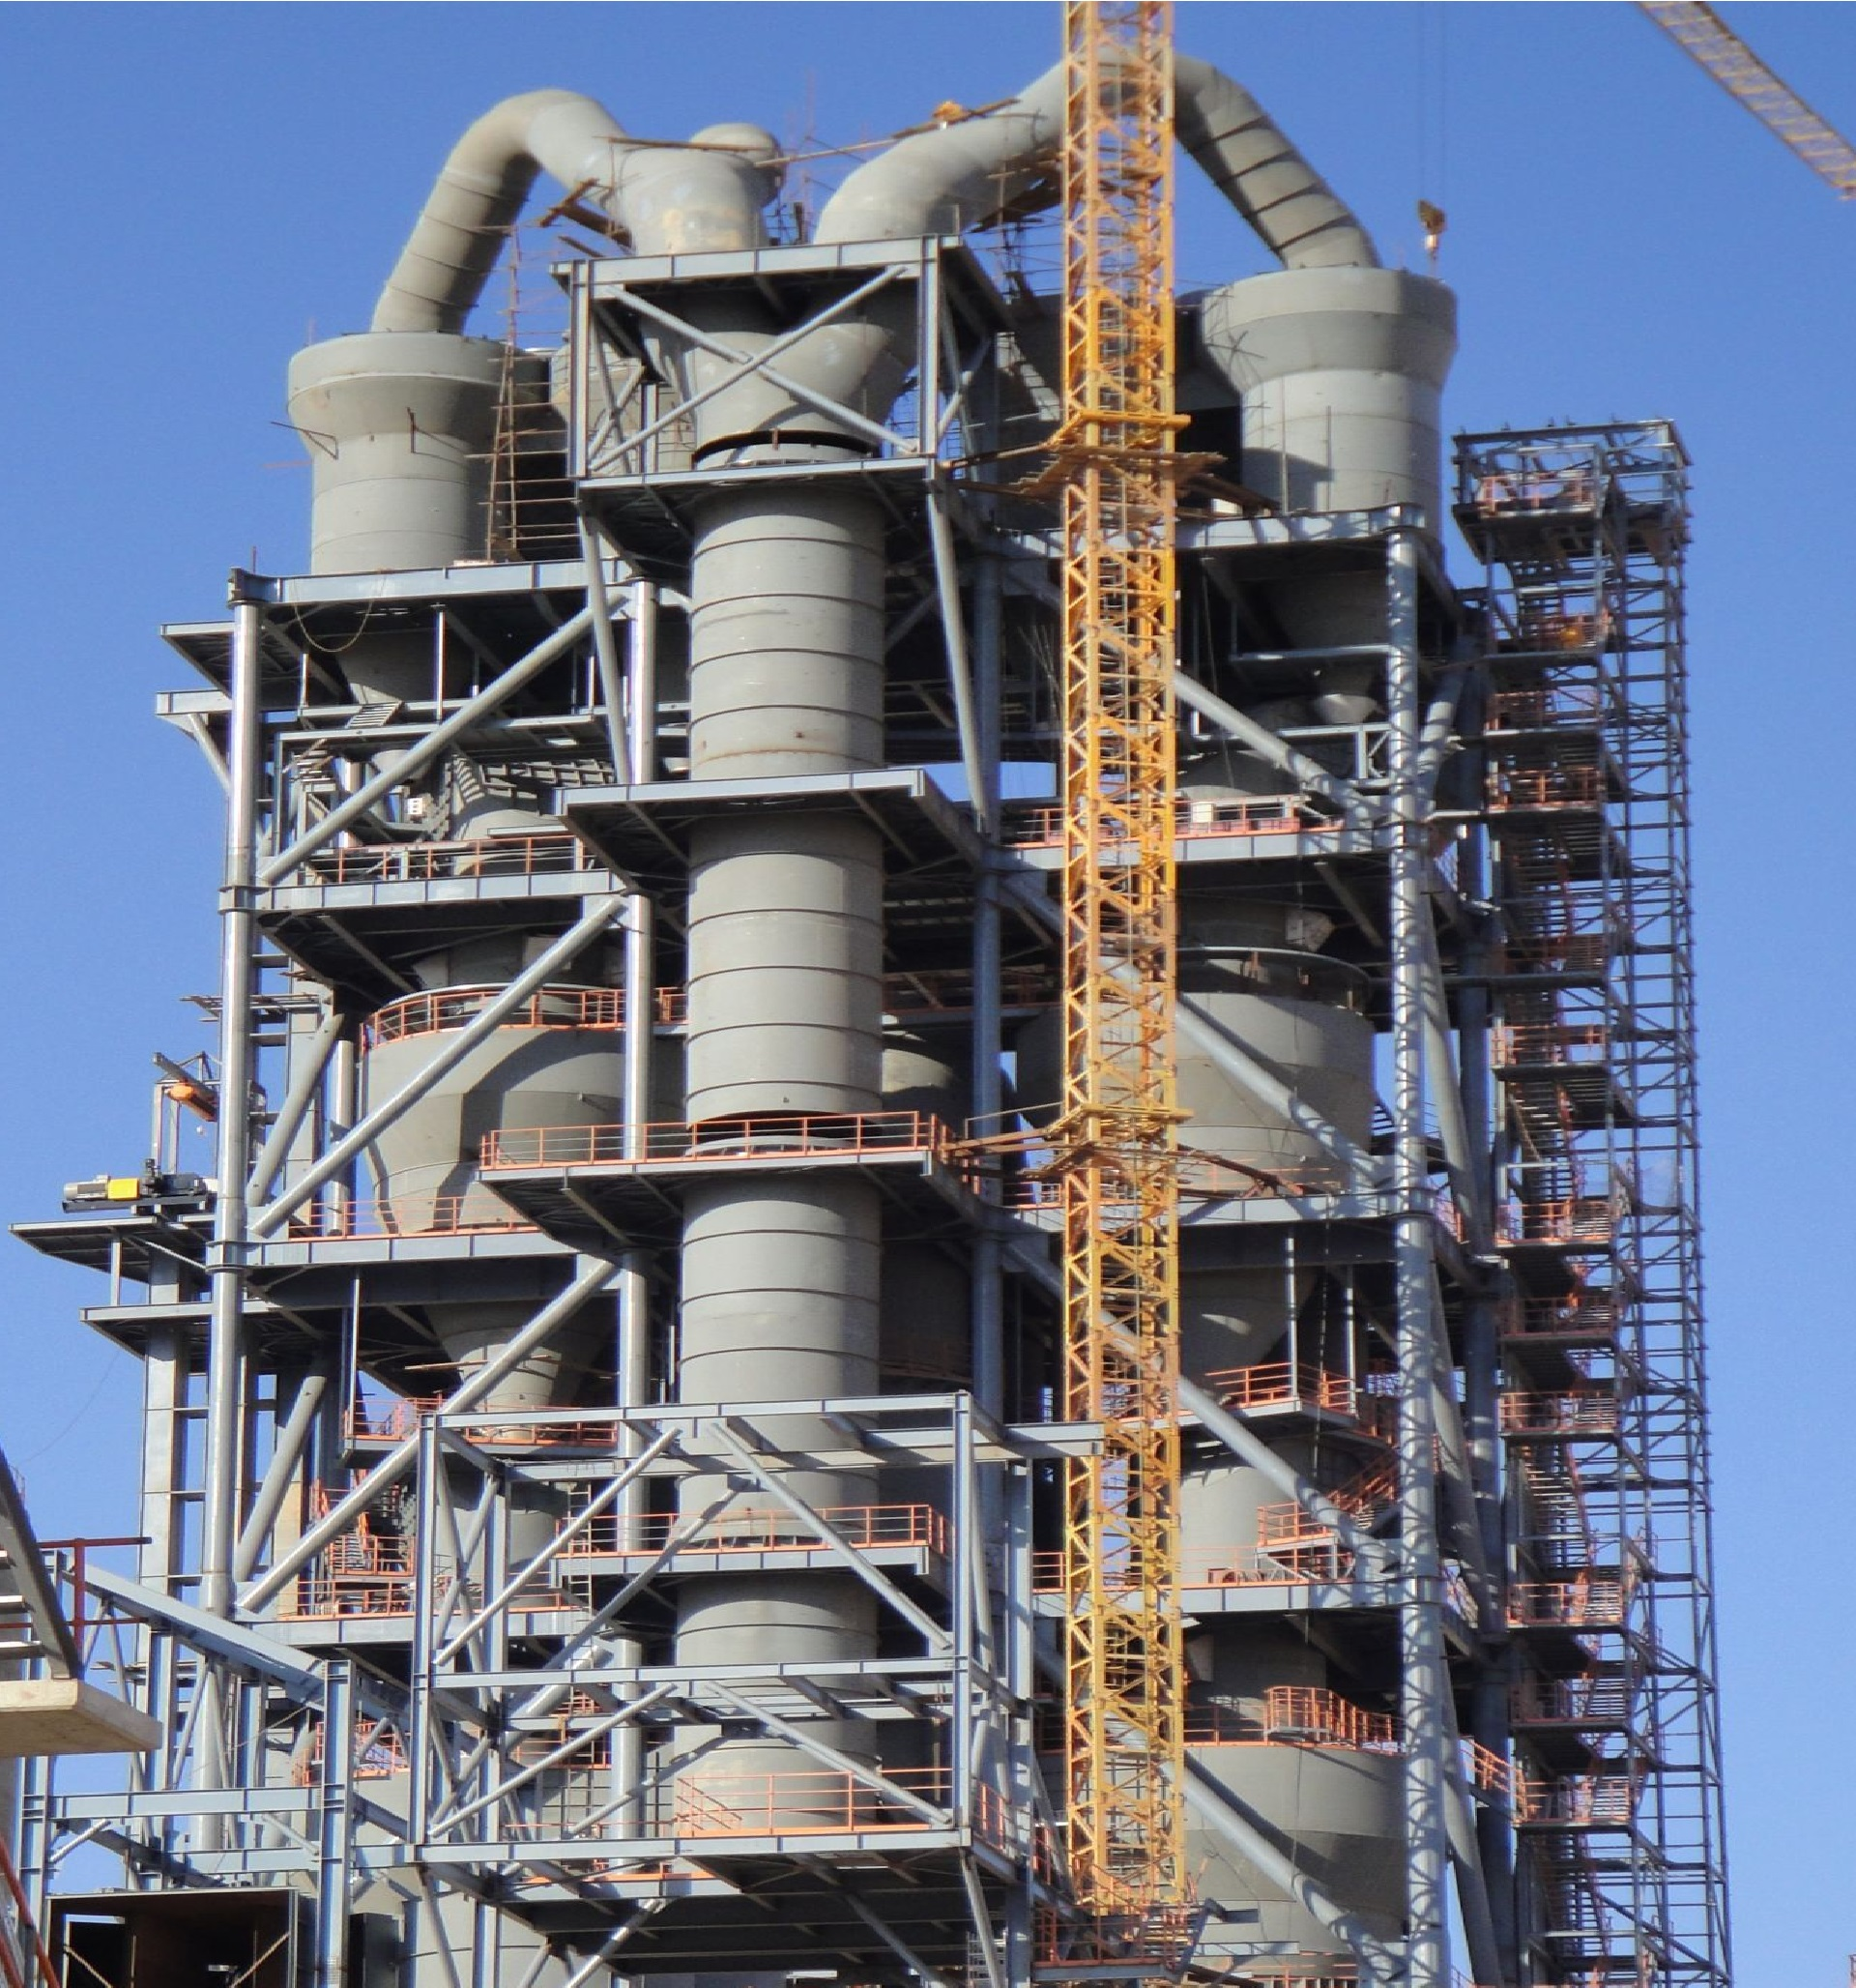 images/Product/cement/cement-pre-heater tower-cail co.jpg